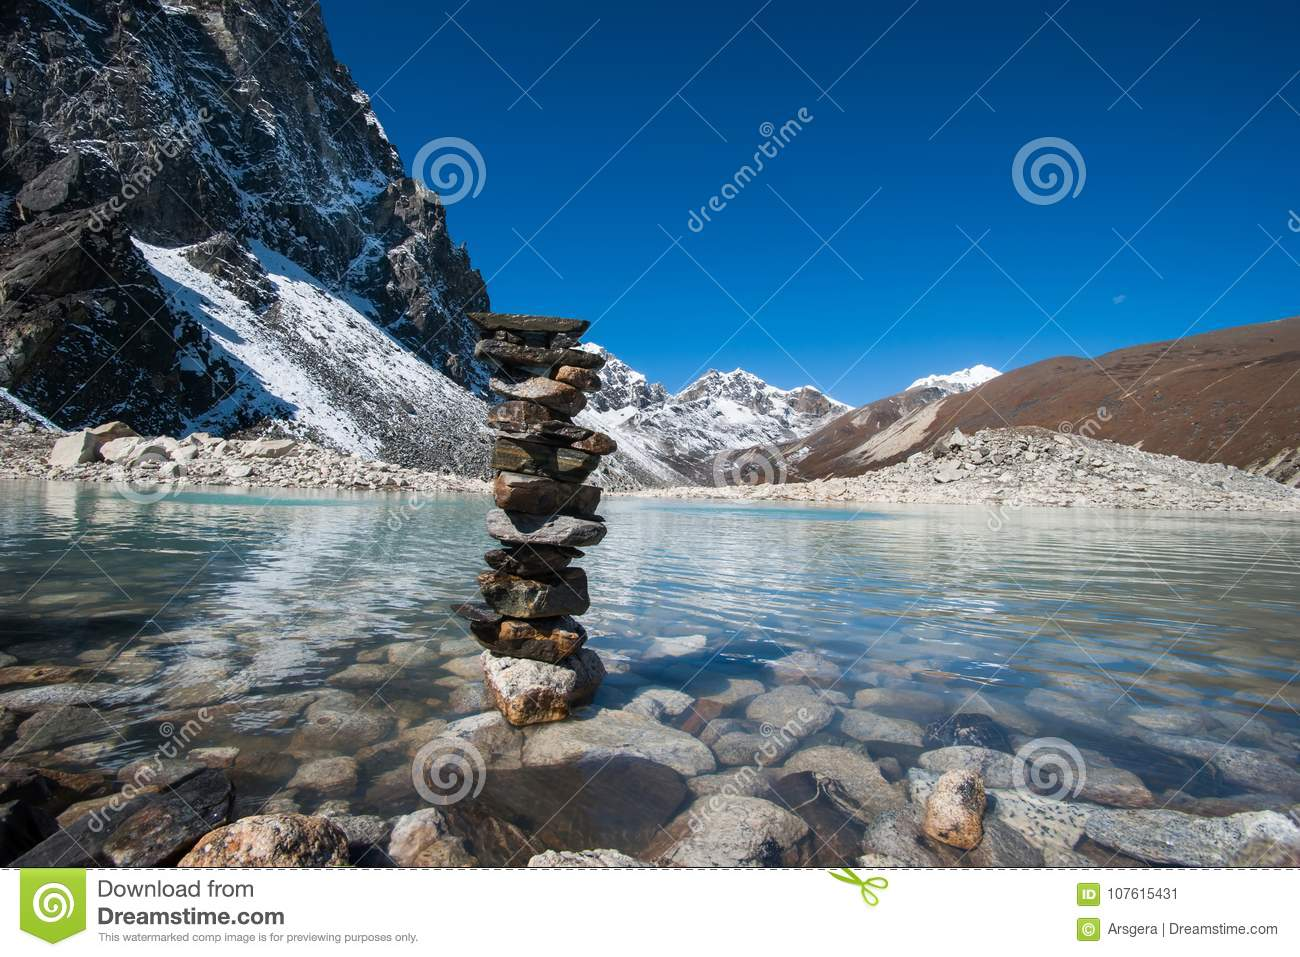 Buddhism: Stones and Sacred Lake near Gokyo